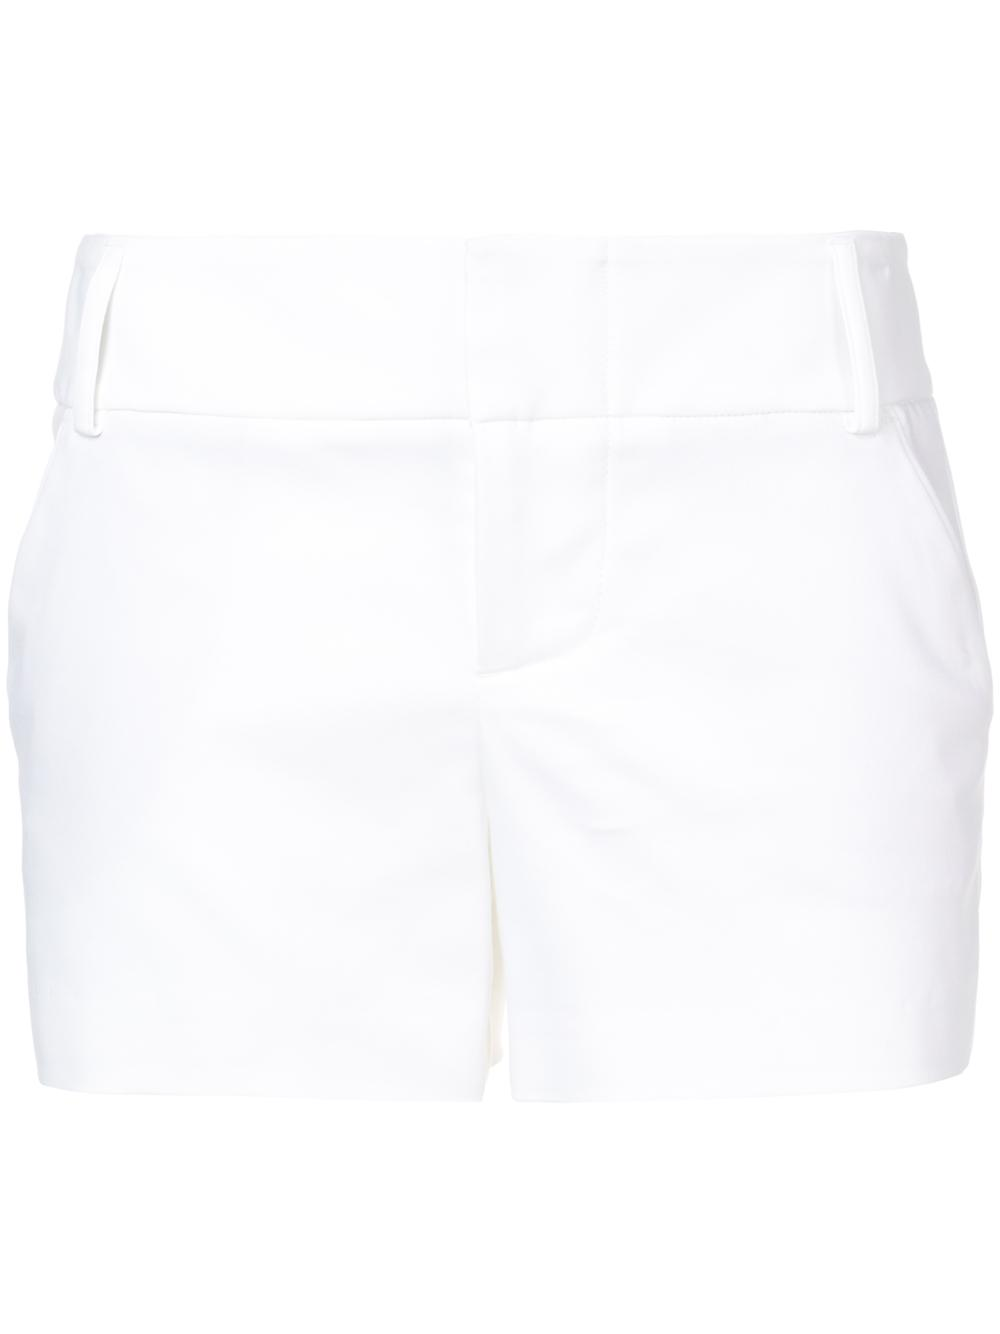 Cady Tailored Shorts Item # W000133198